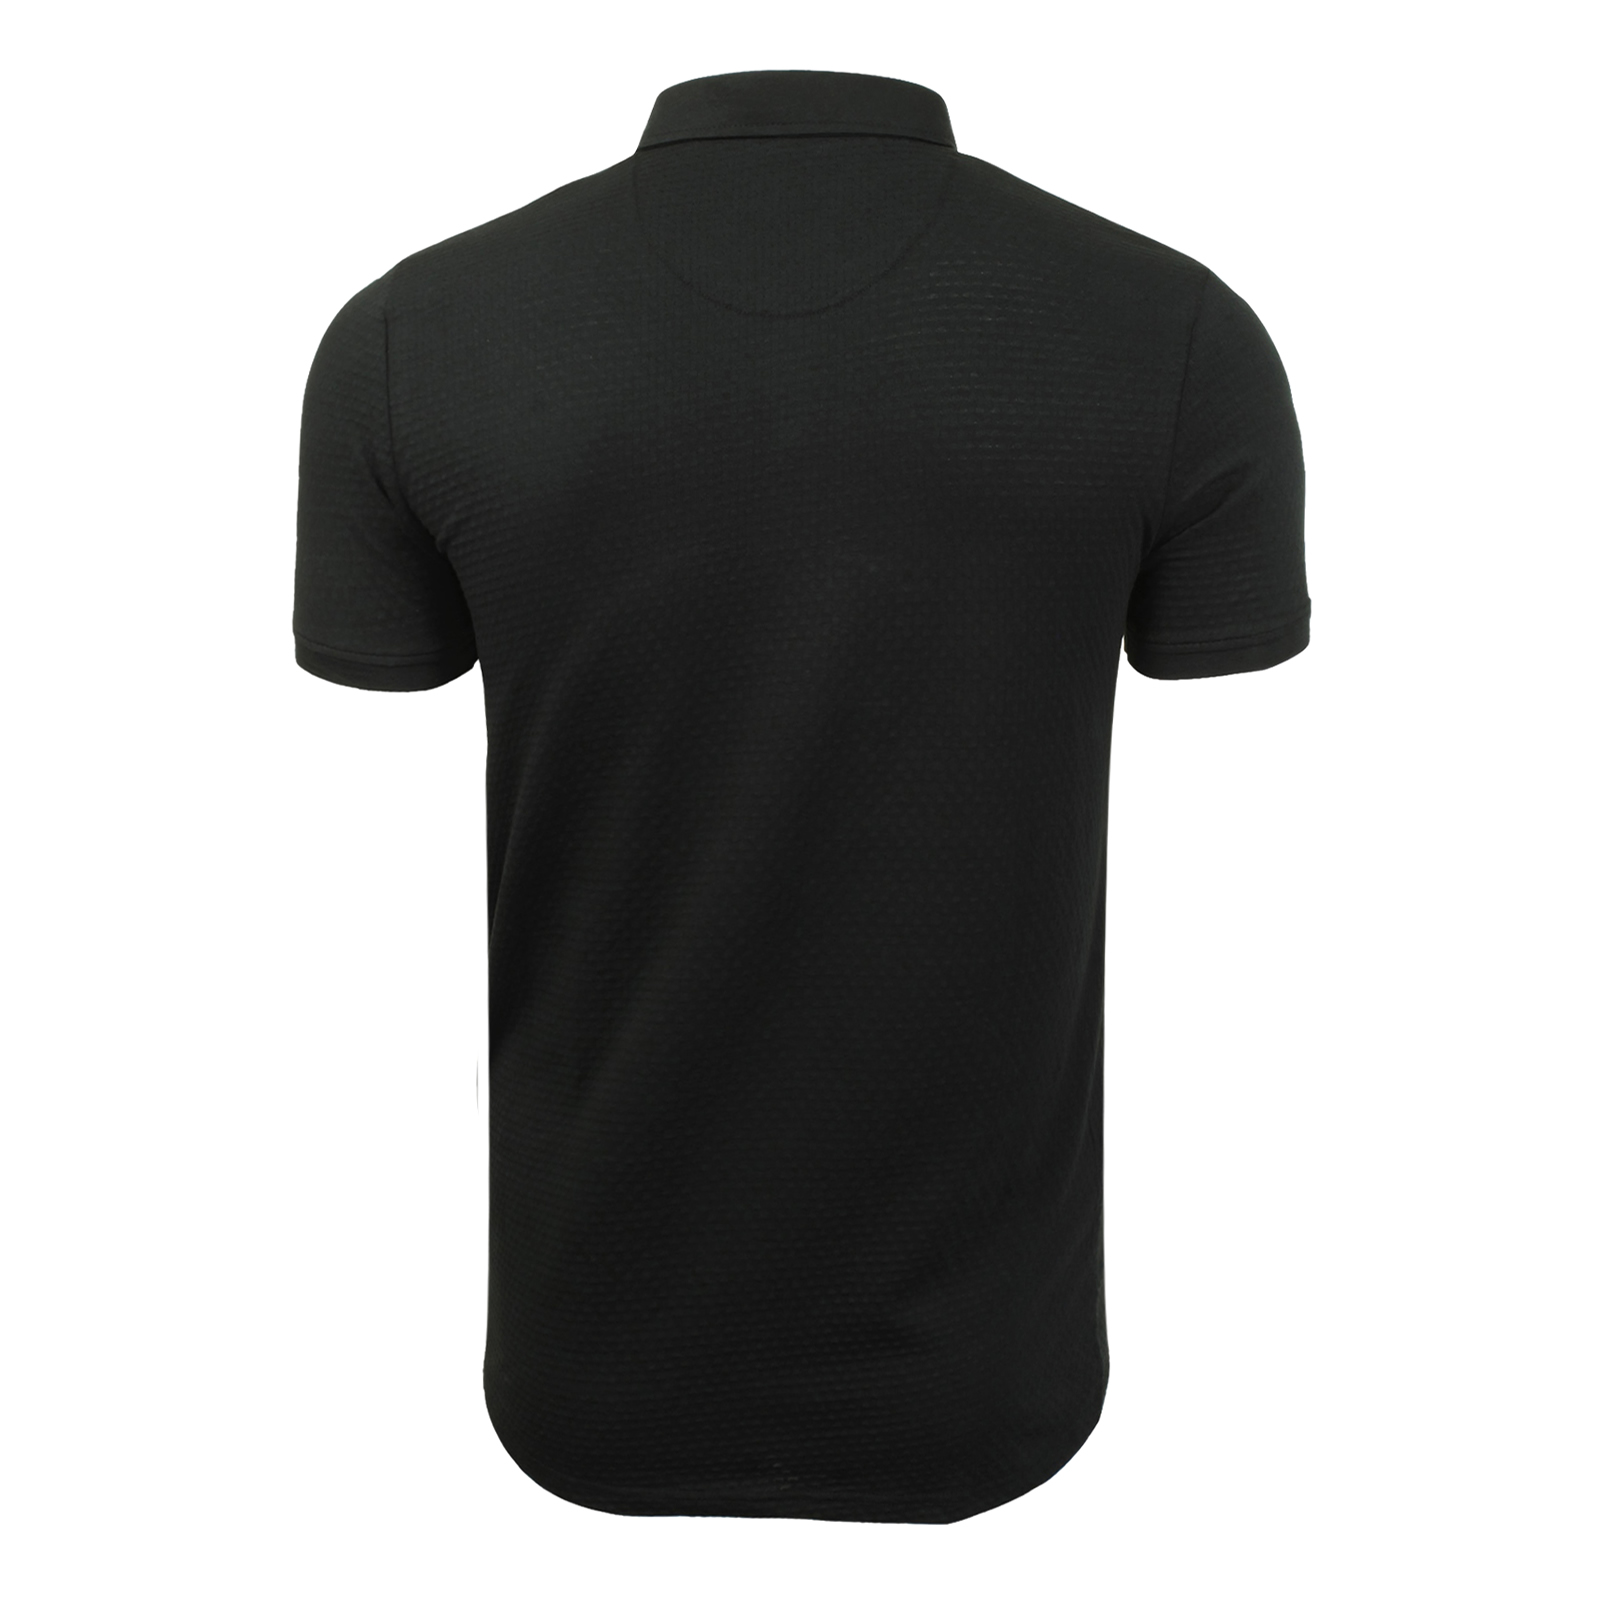 Mens-Polo-T-Shirt-Brave-Soul-Shield-Cotton-Collared-Short-Sleeve-Casual-Top thumbnail 9